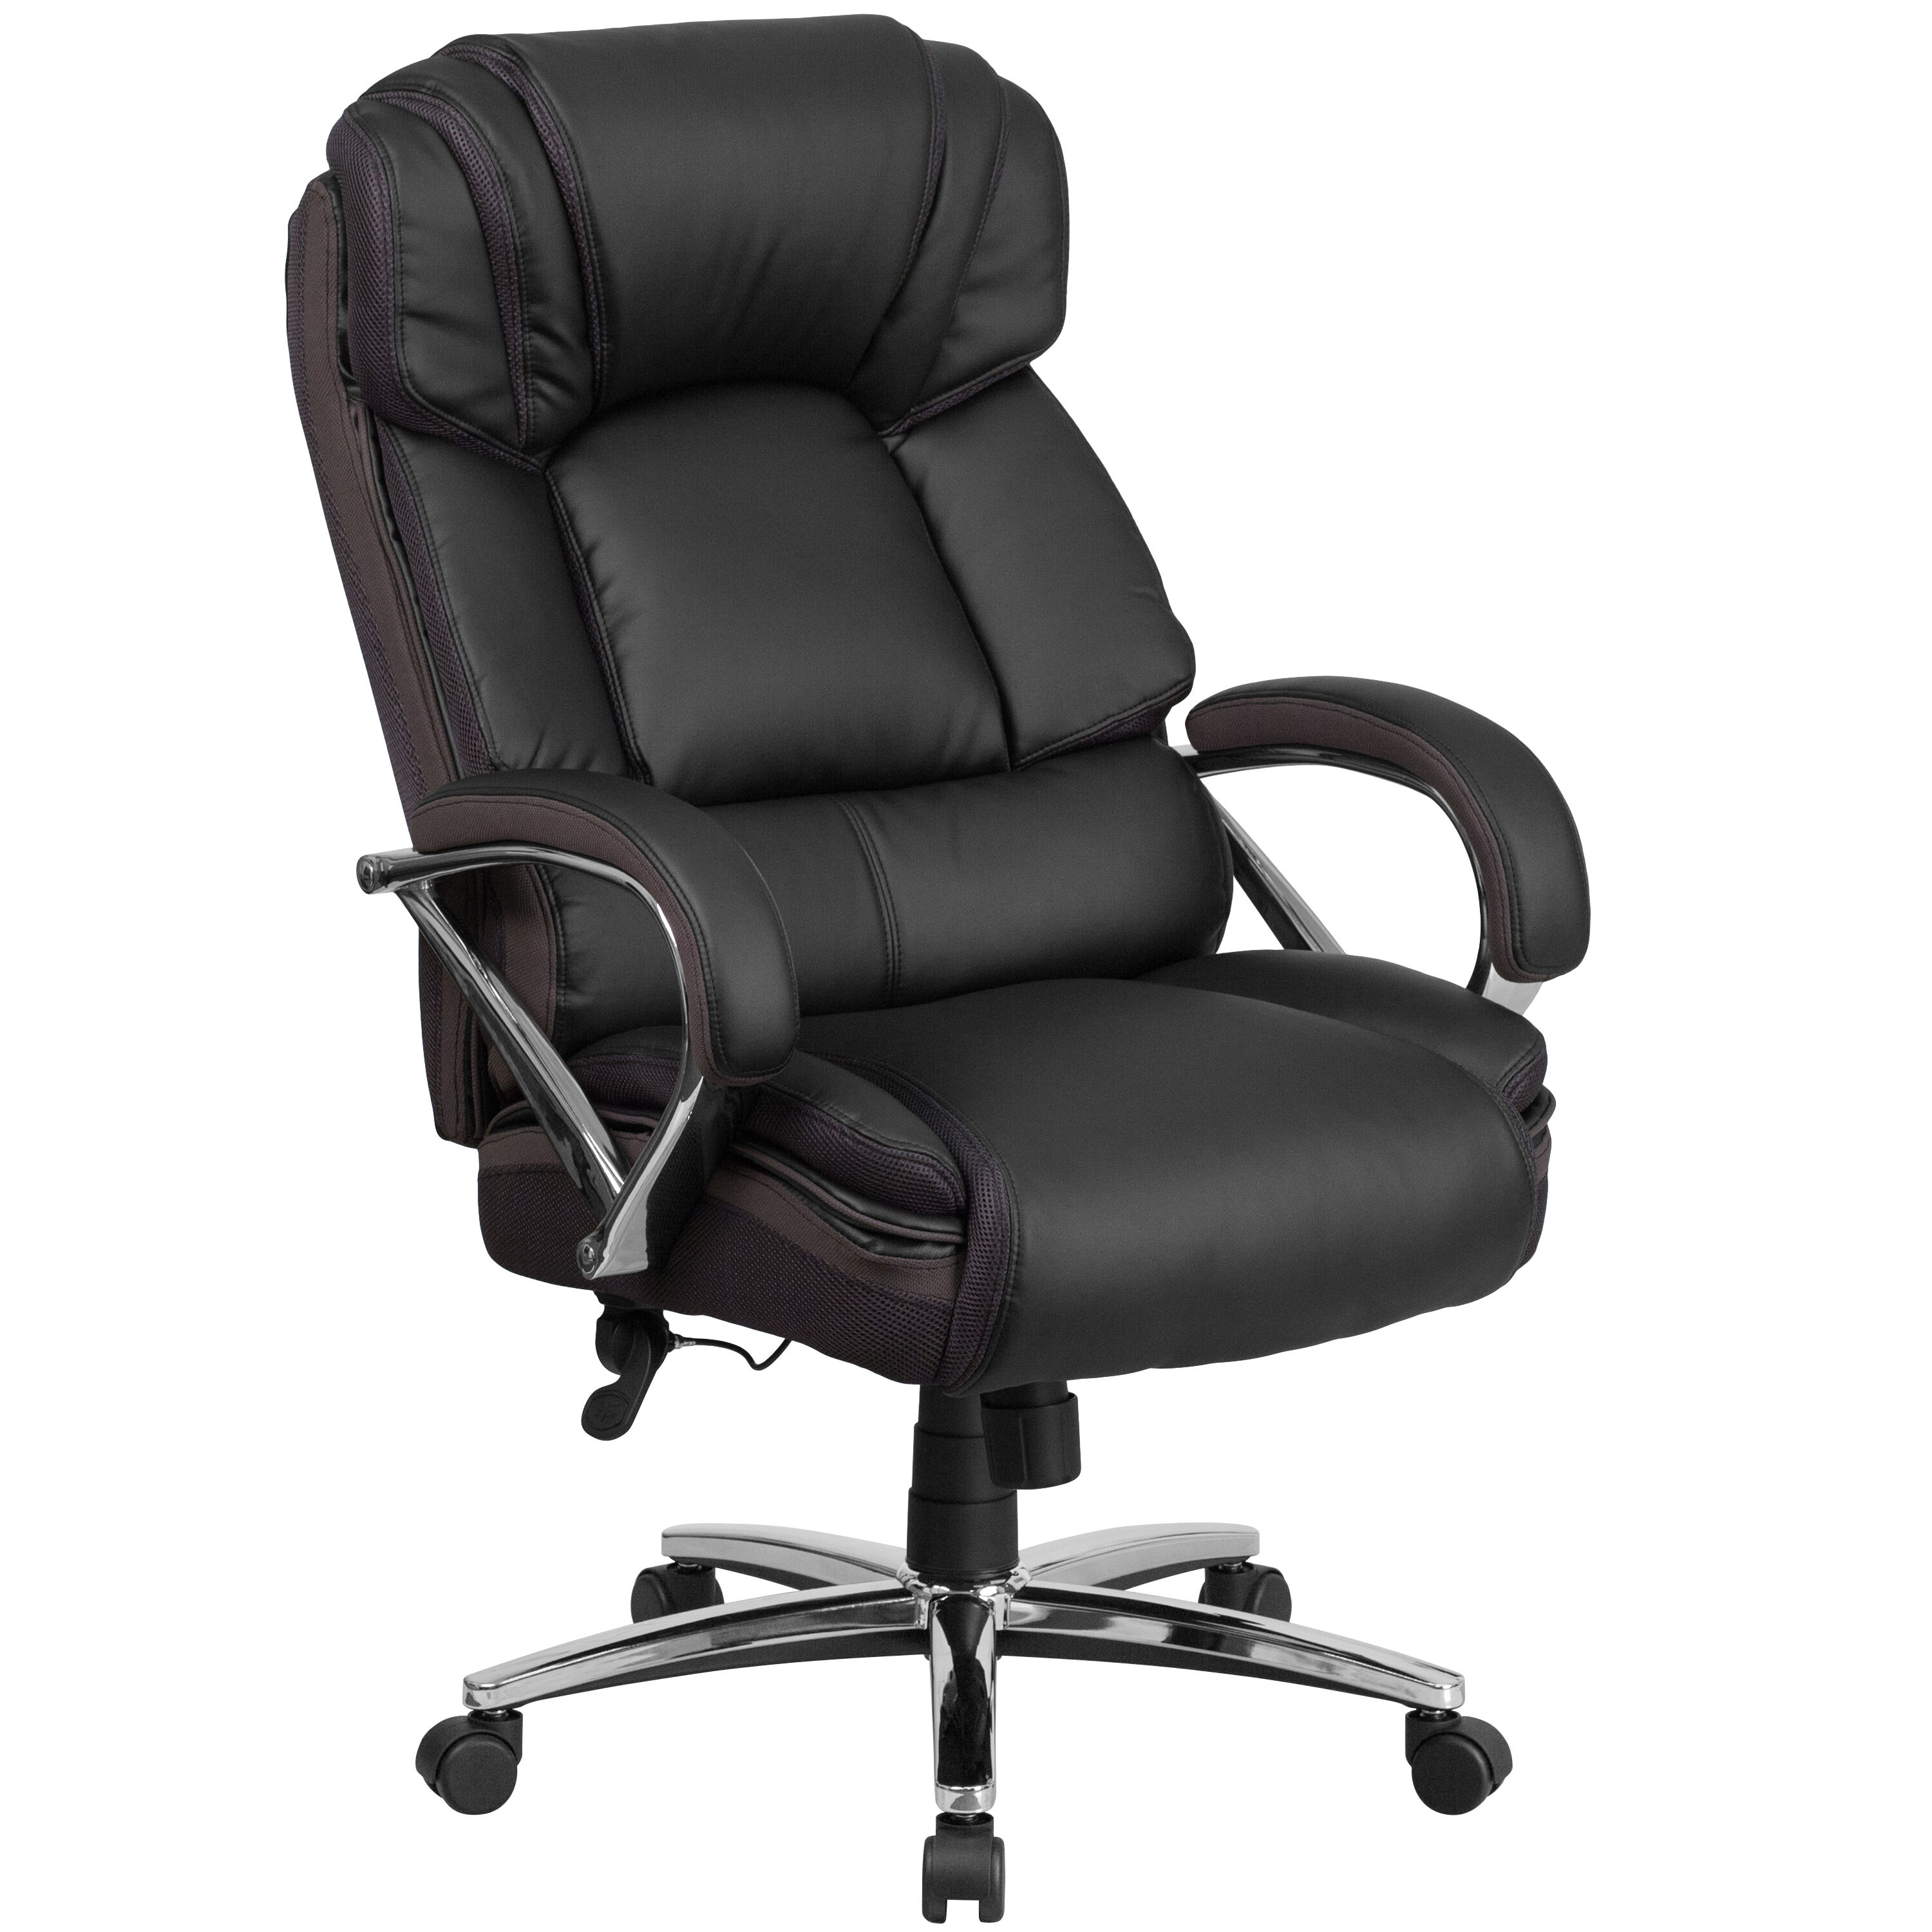 Best Rated Recliner Chairs Flash Furniture Hercules Series Big And Tall 500 Lb Rated